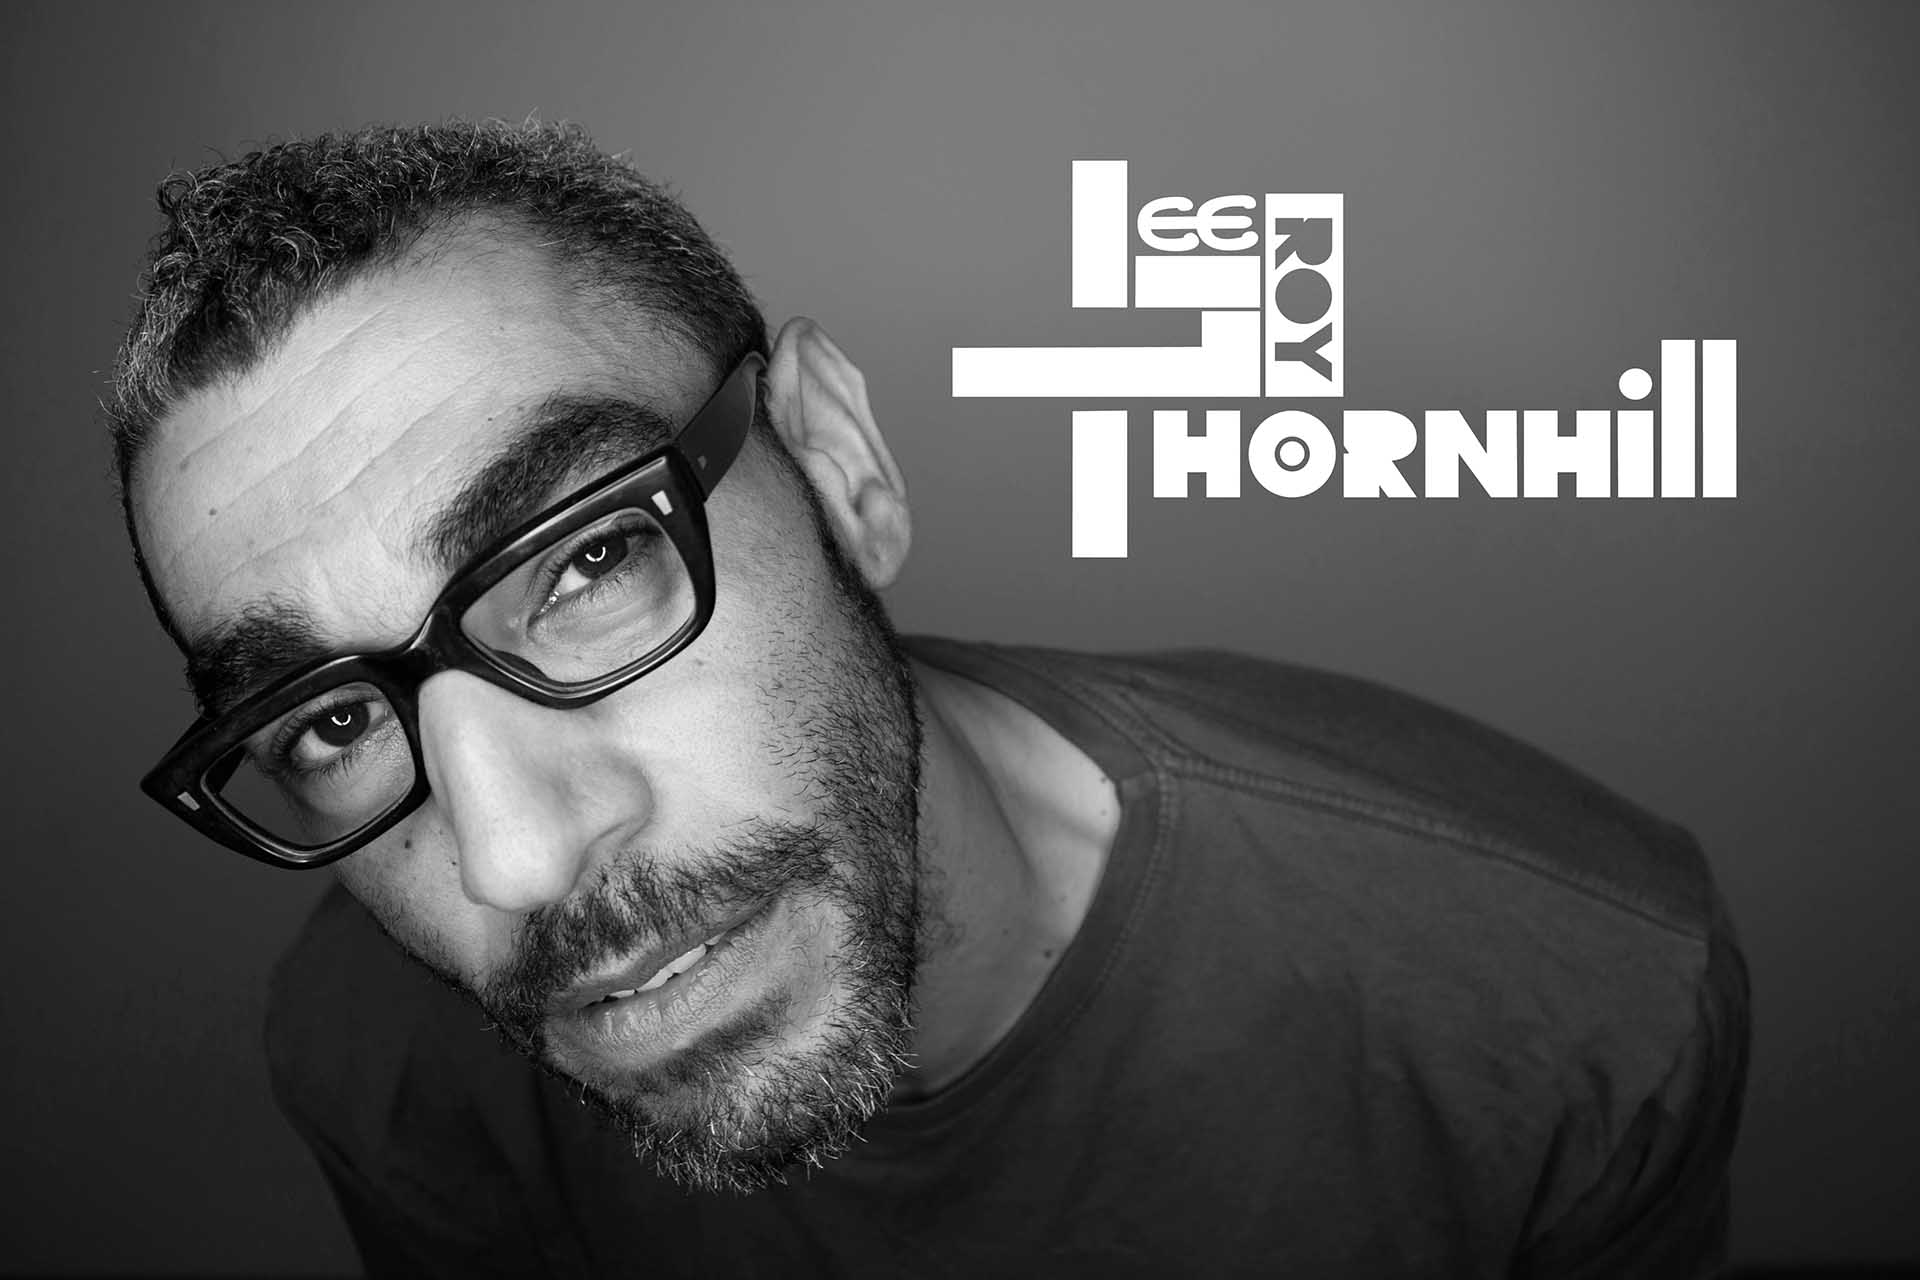 CB presents - Leeroy Thornhill